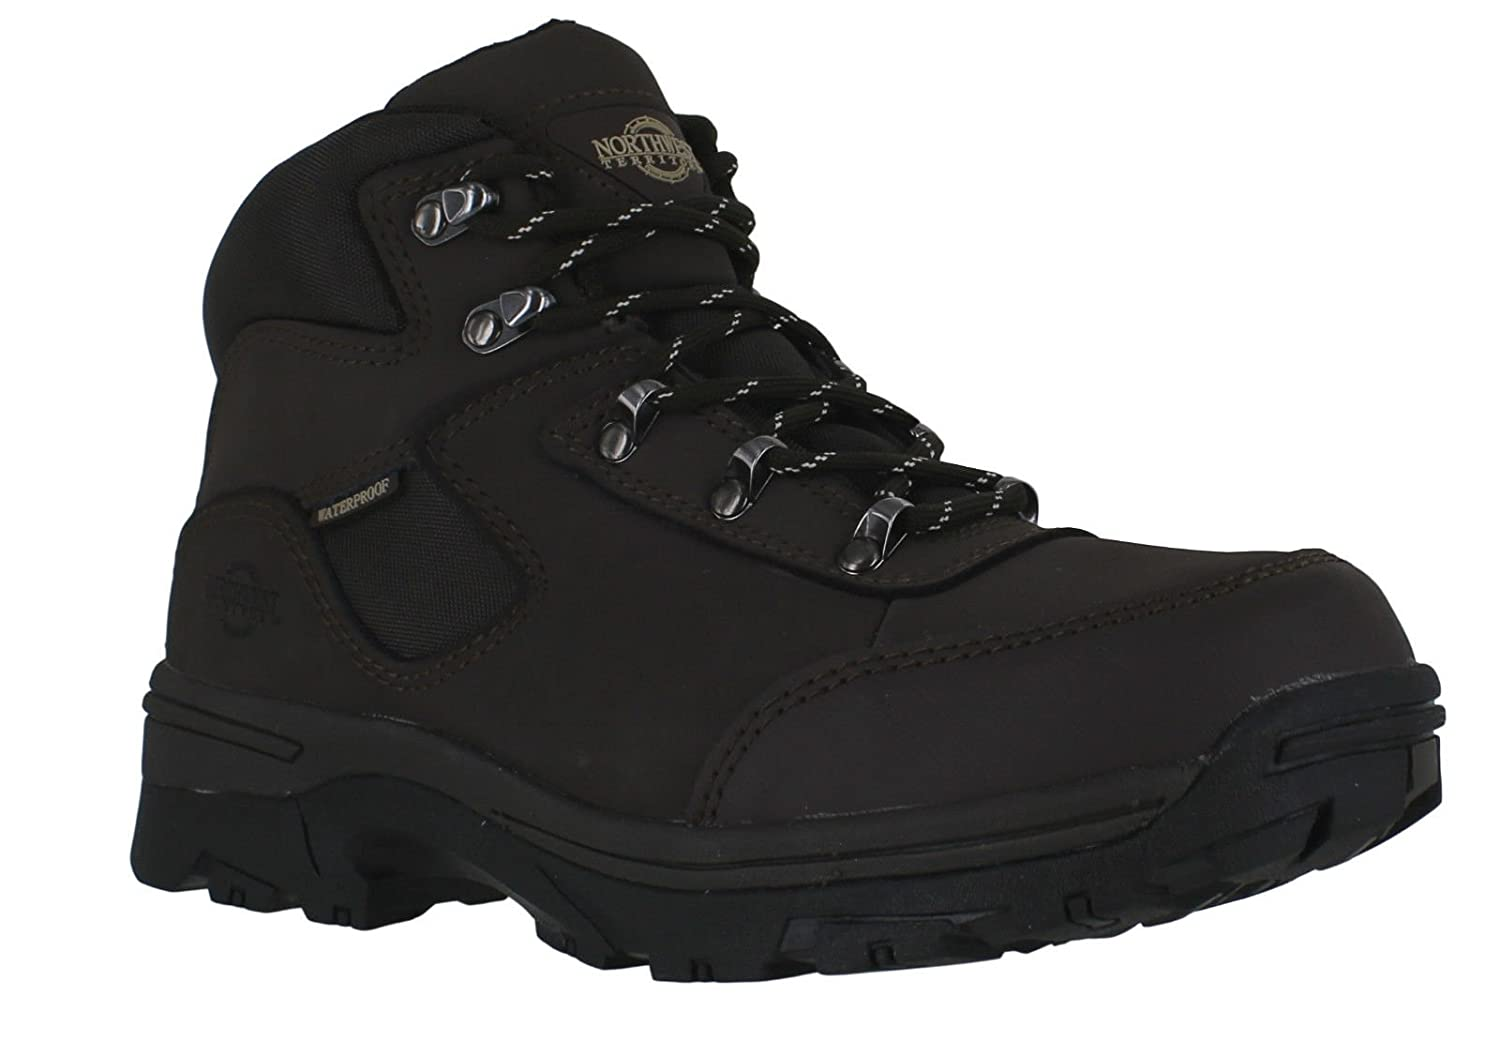 Ladies Walking/Hiking Boot, tormenta totalmente impermeable Lace Up Piel/Nailon superior STORM